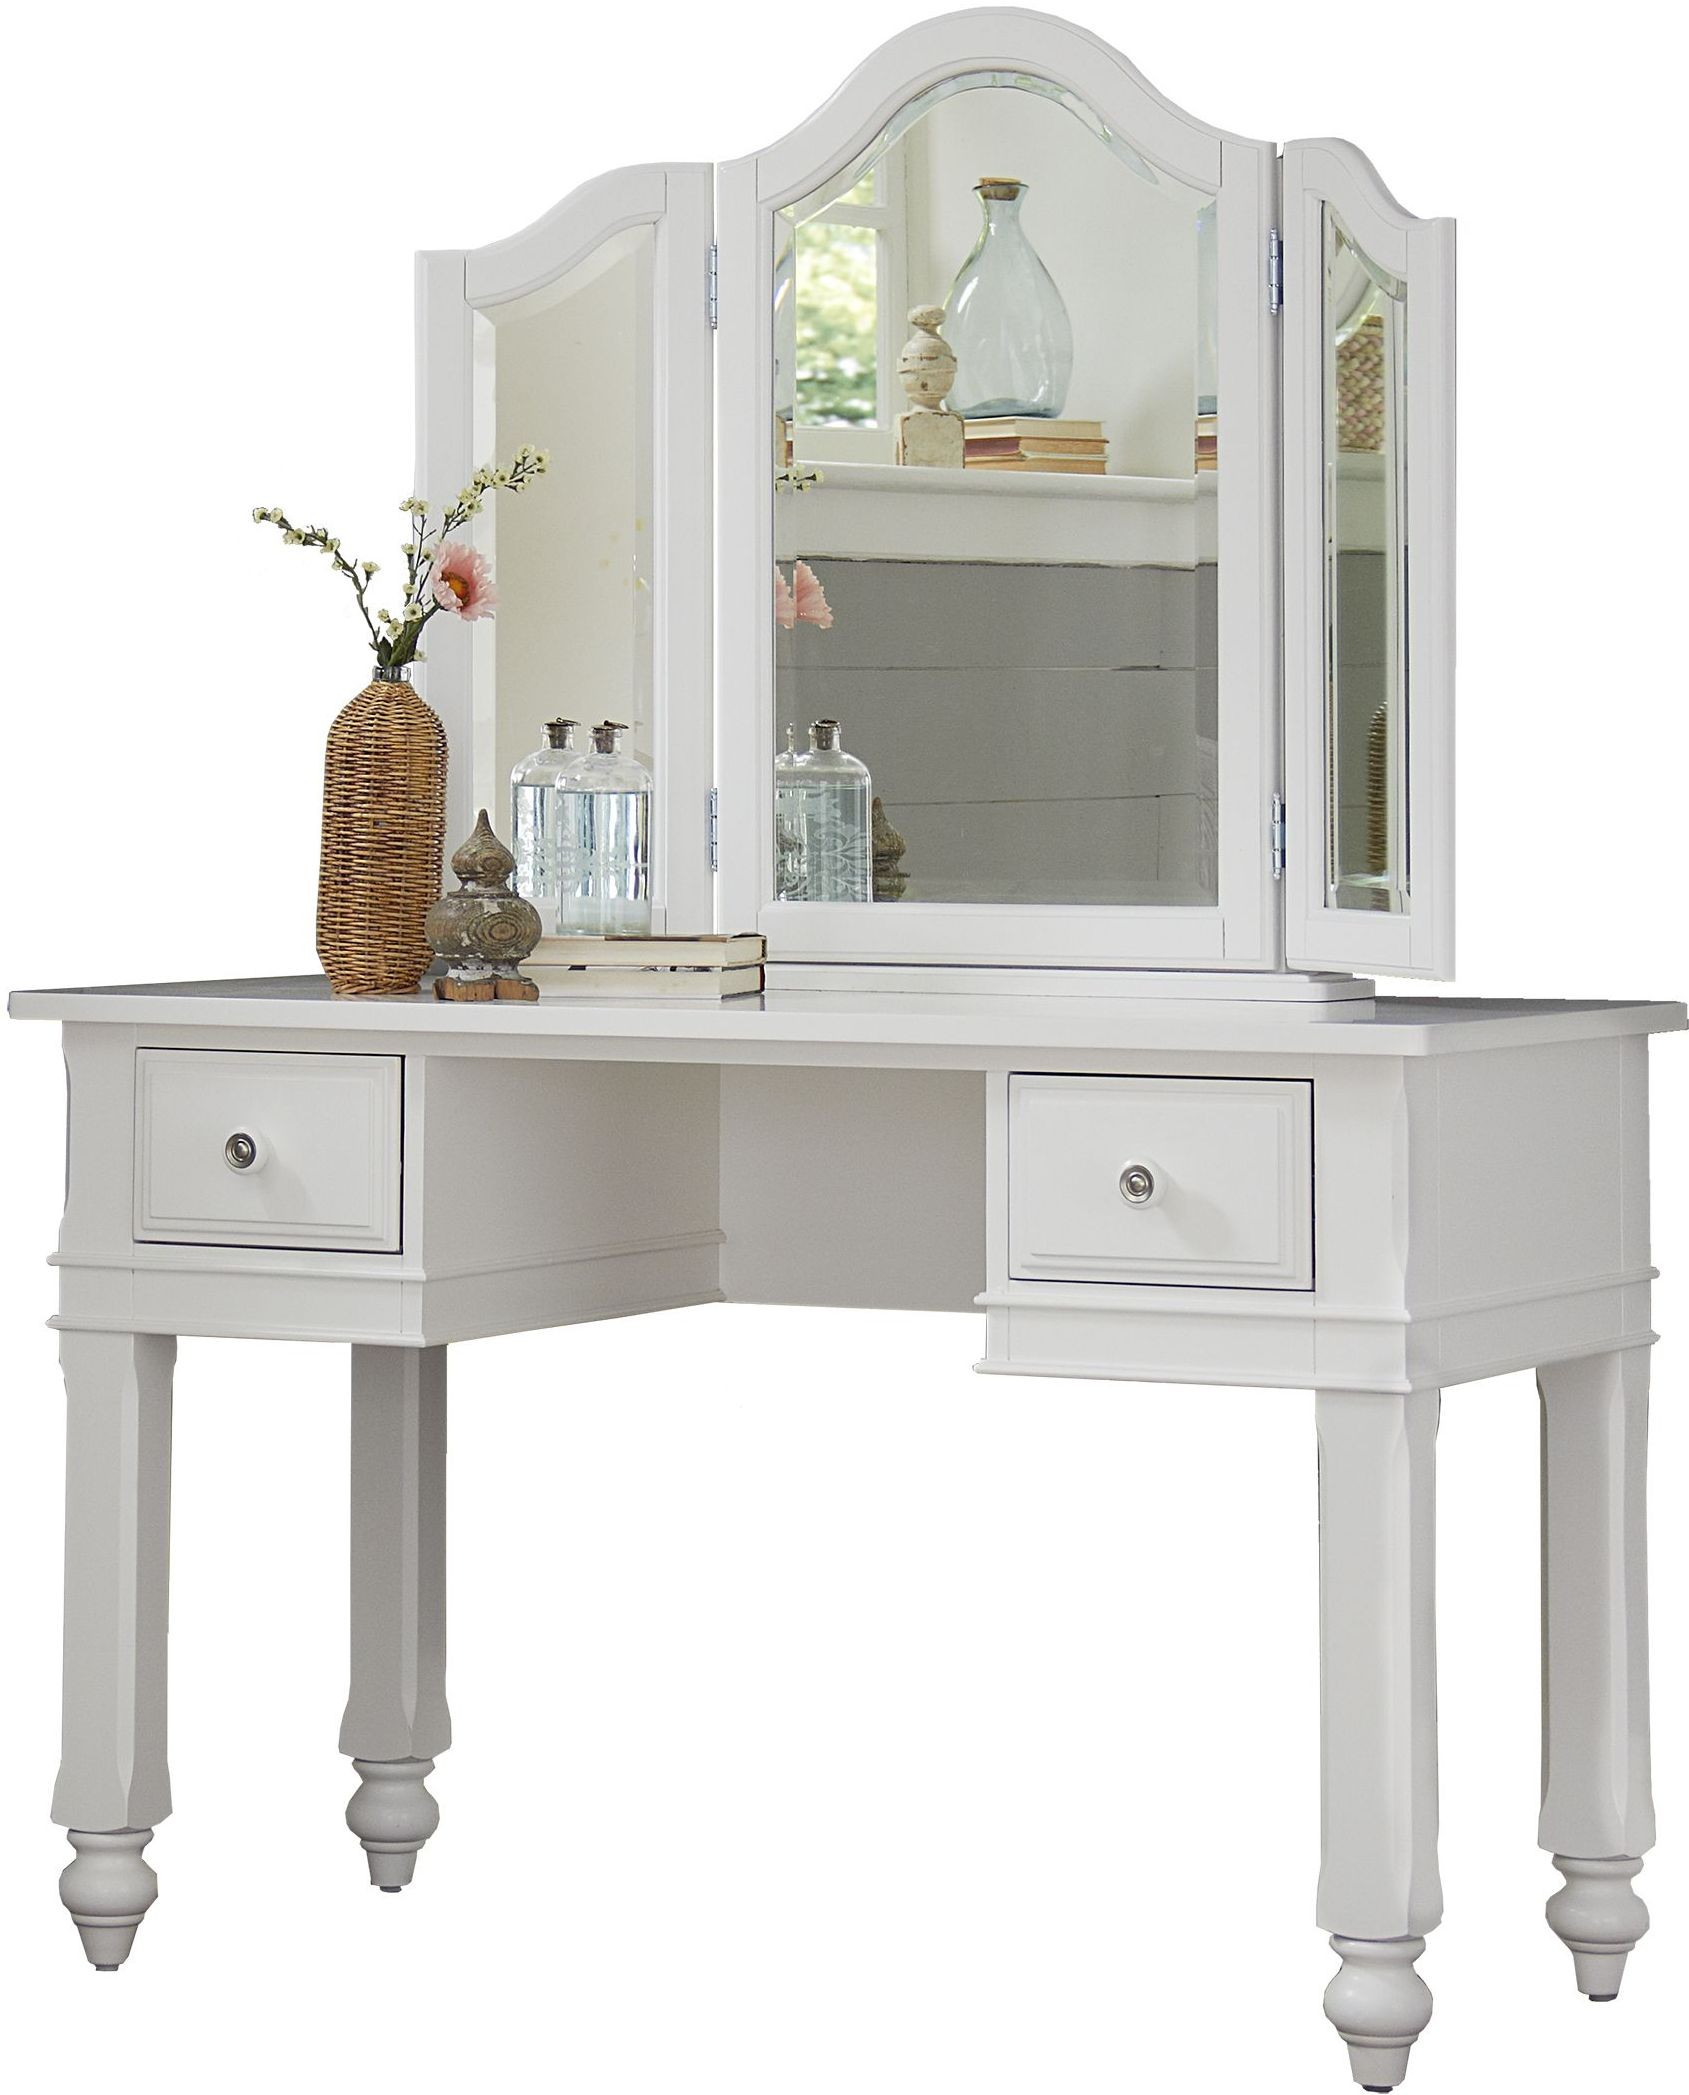 Lake House White Writing Desk With Vanity Mirror, 1540NDV